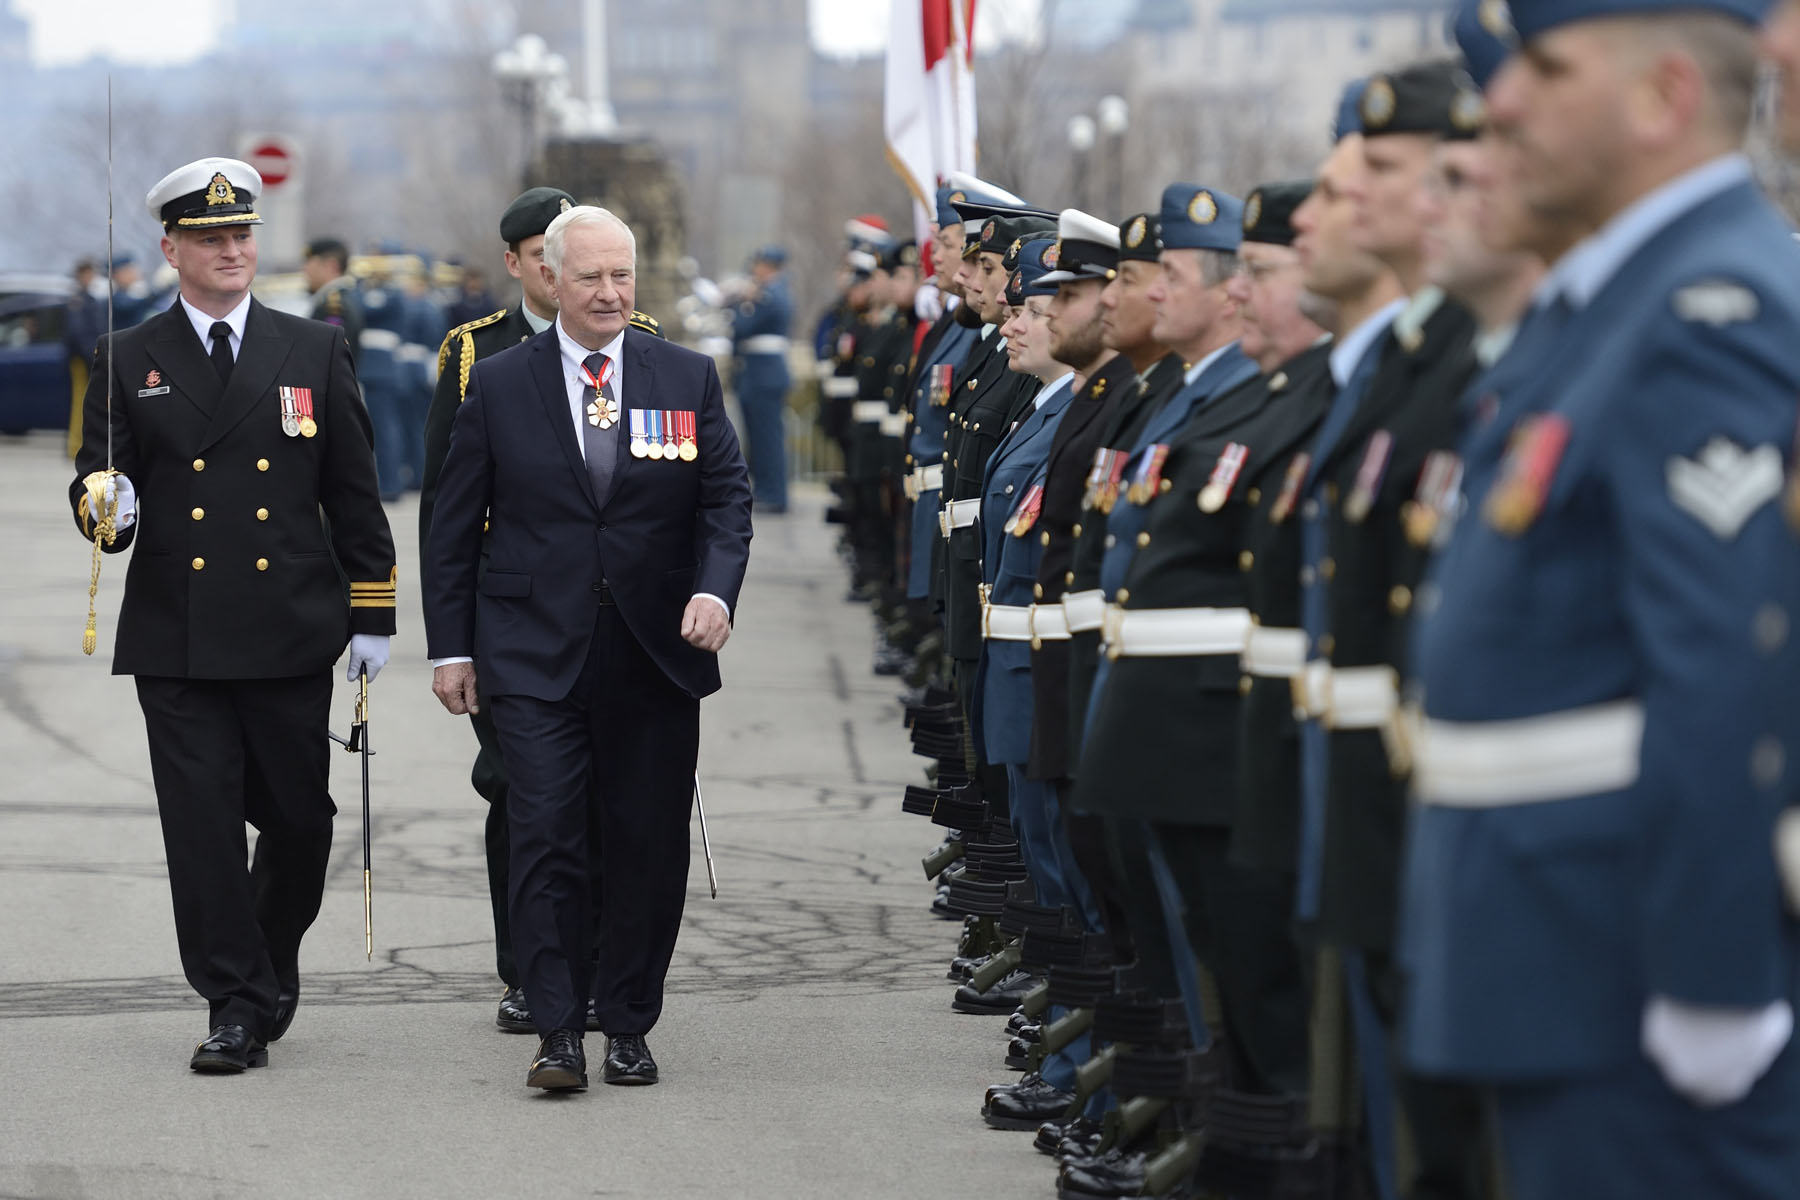 Il a ensuite procédé à l'inspection d'une garde d'honneur de 100 membres de l'Armée canadienne, de l'Aviation royale canadienne et de la Marine royale canadienne.